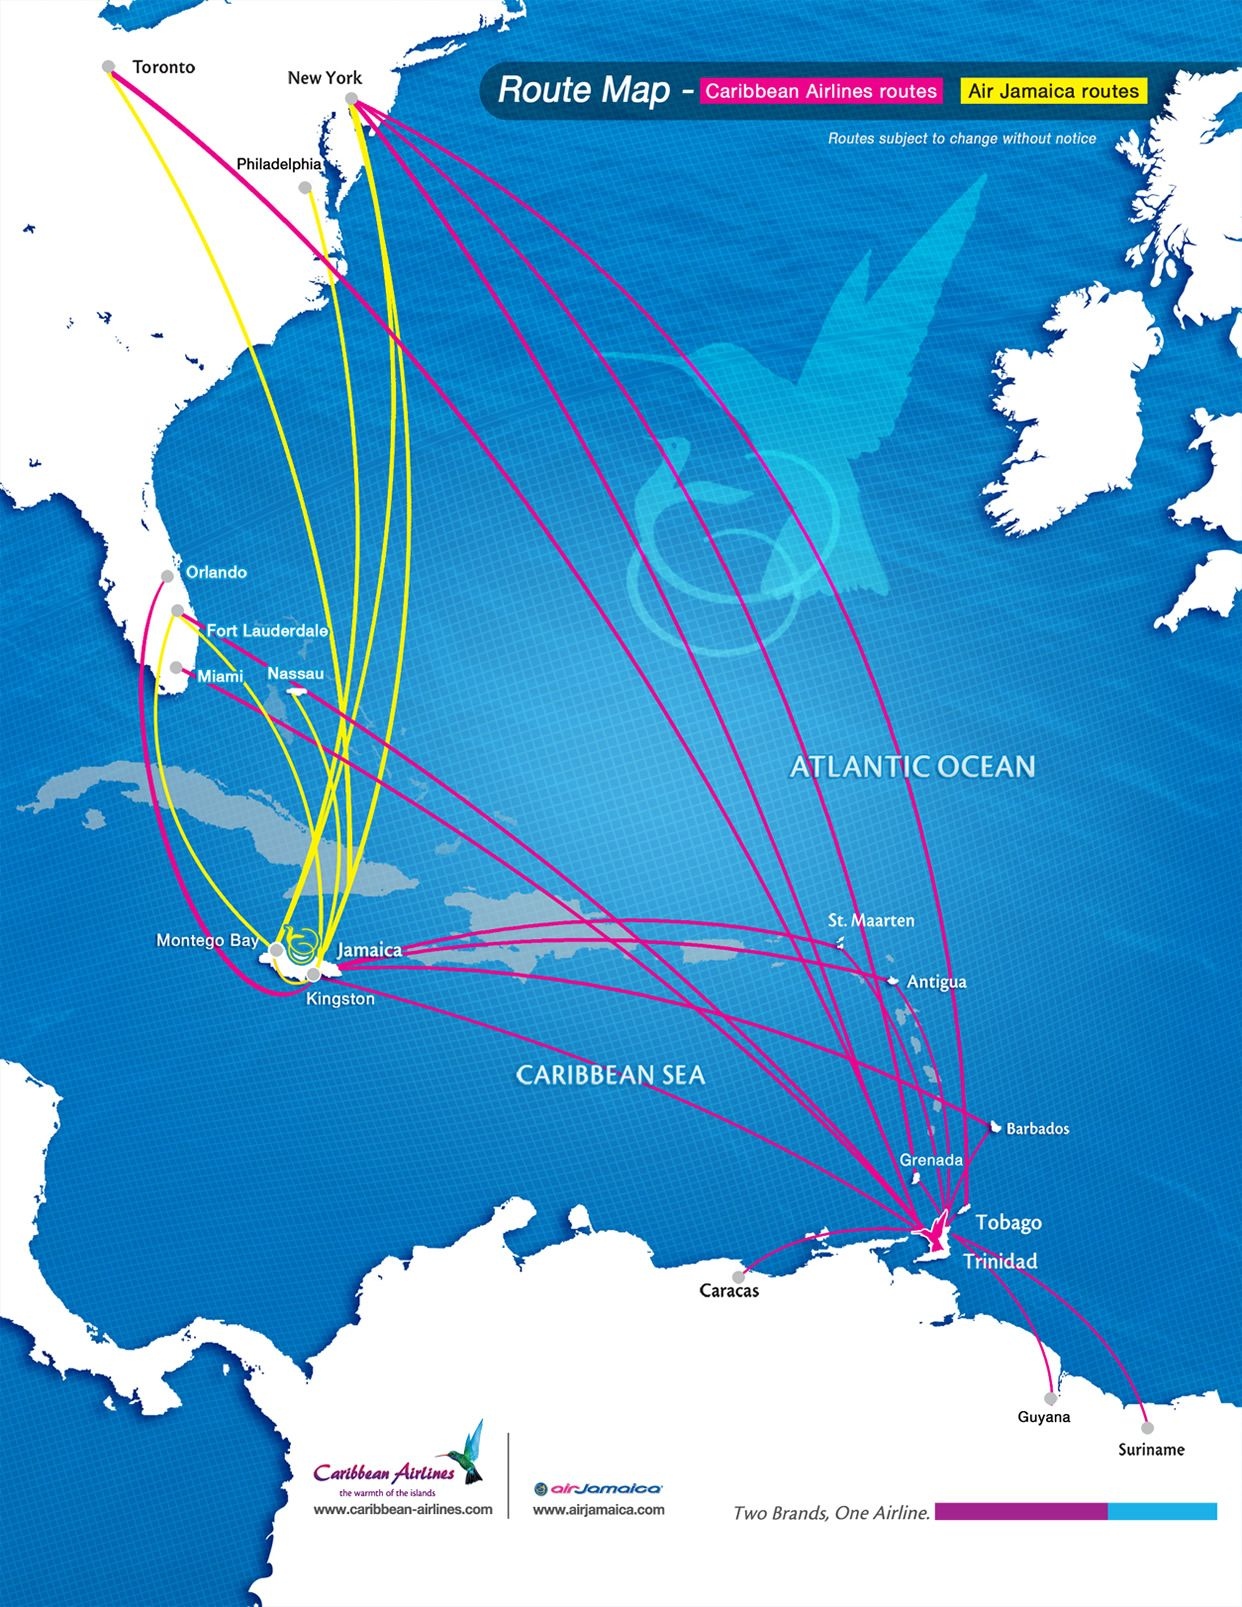 Caribbean Airlines & Air Jamaica route map | Airlines | Air jamaica ...